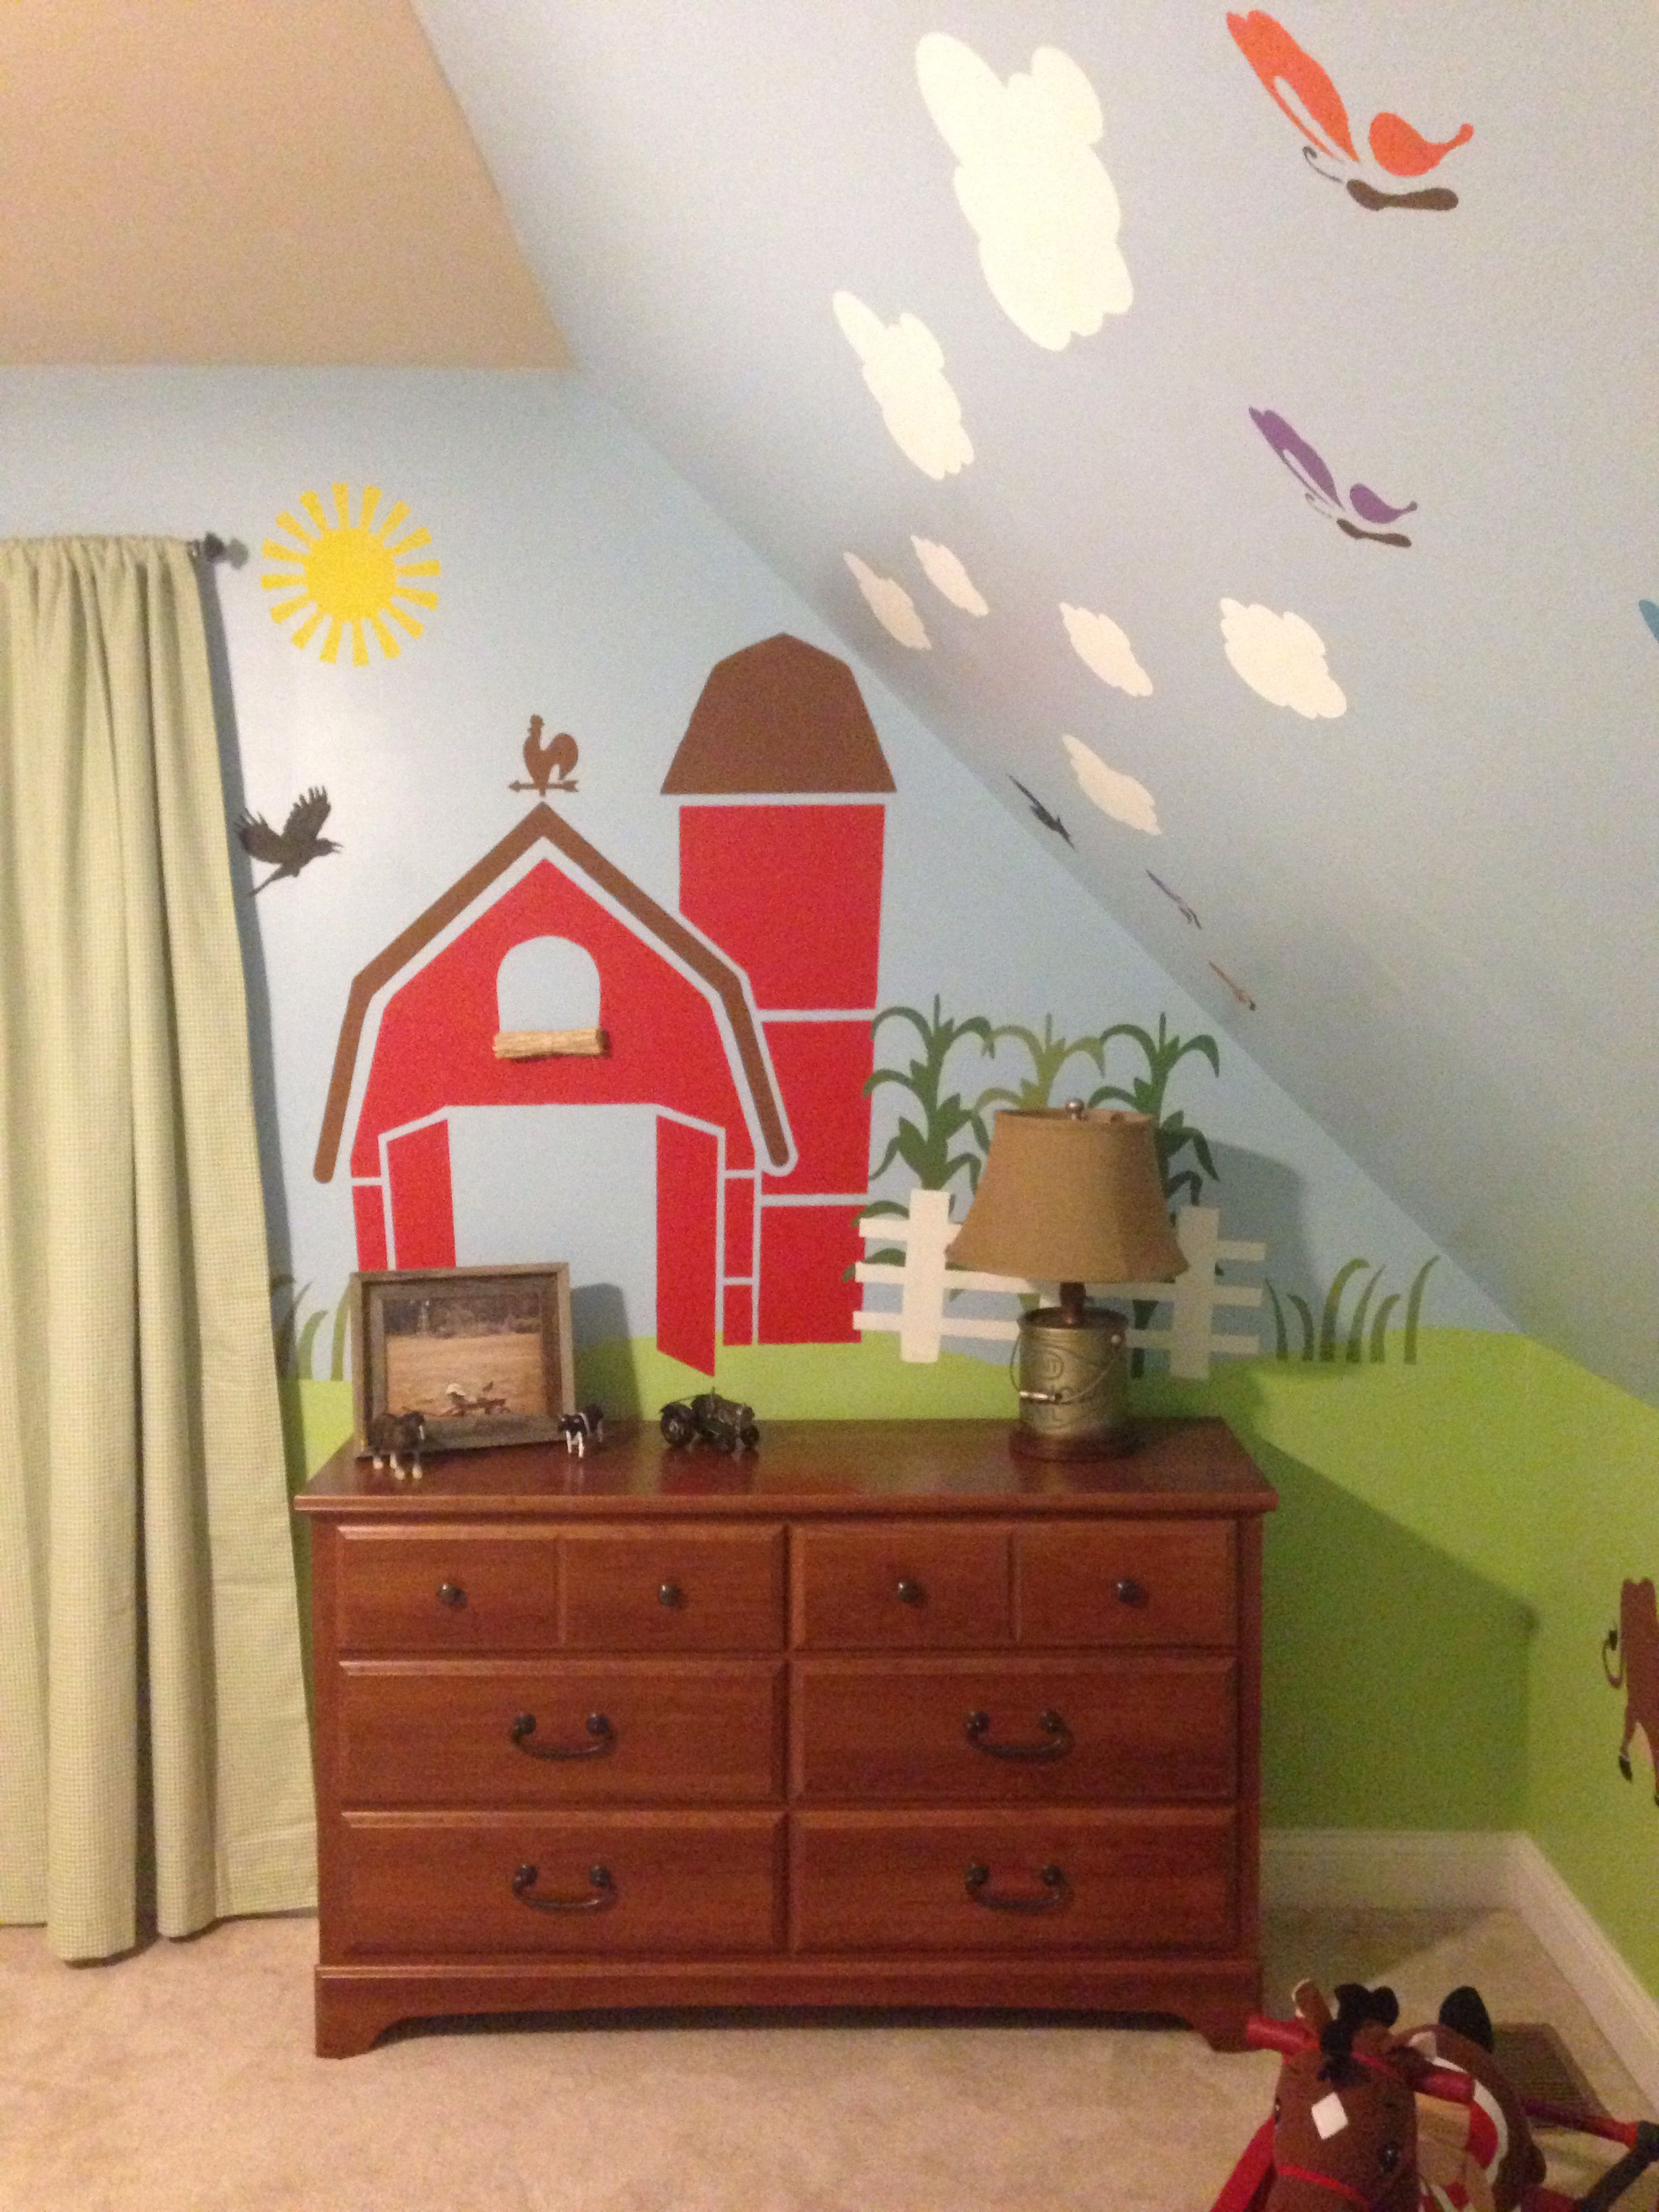 Farm theme bedroom ideas on Pinterest | John Deere Bedroom, Farm Theme ...